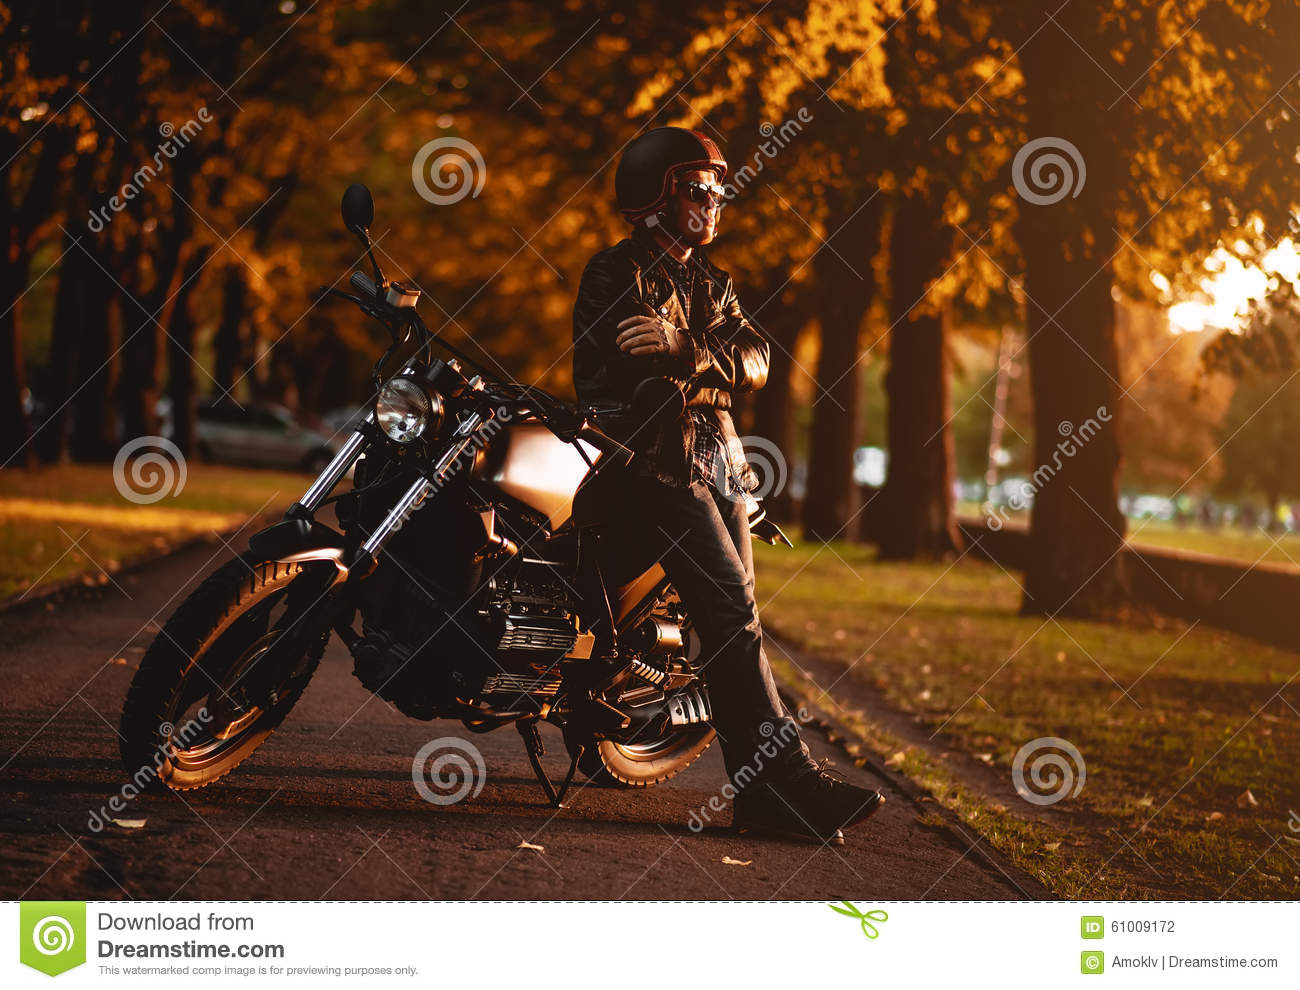 Motorcyclist with a cafe-racer motorcycle